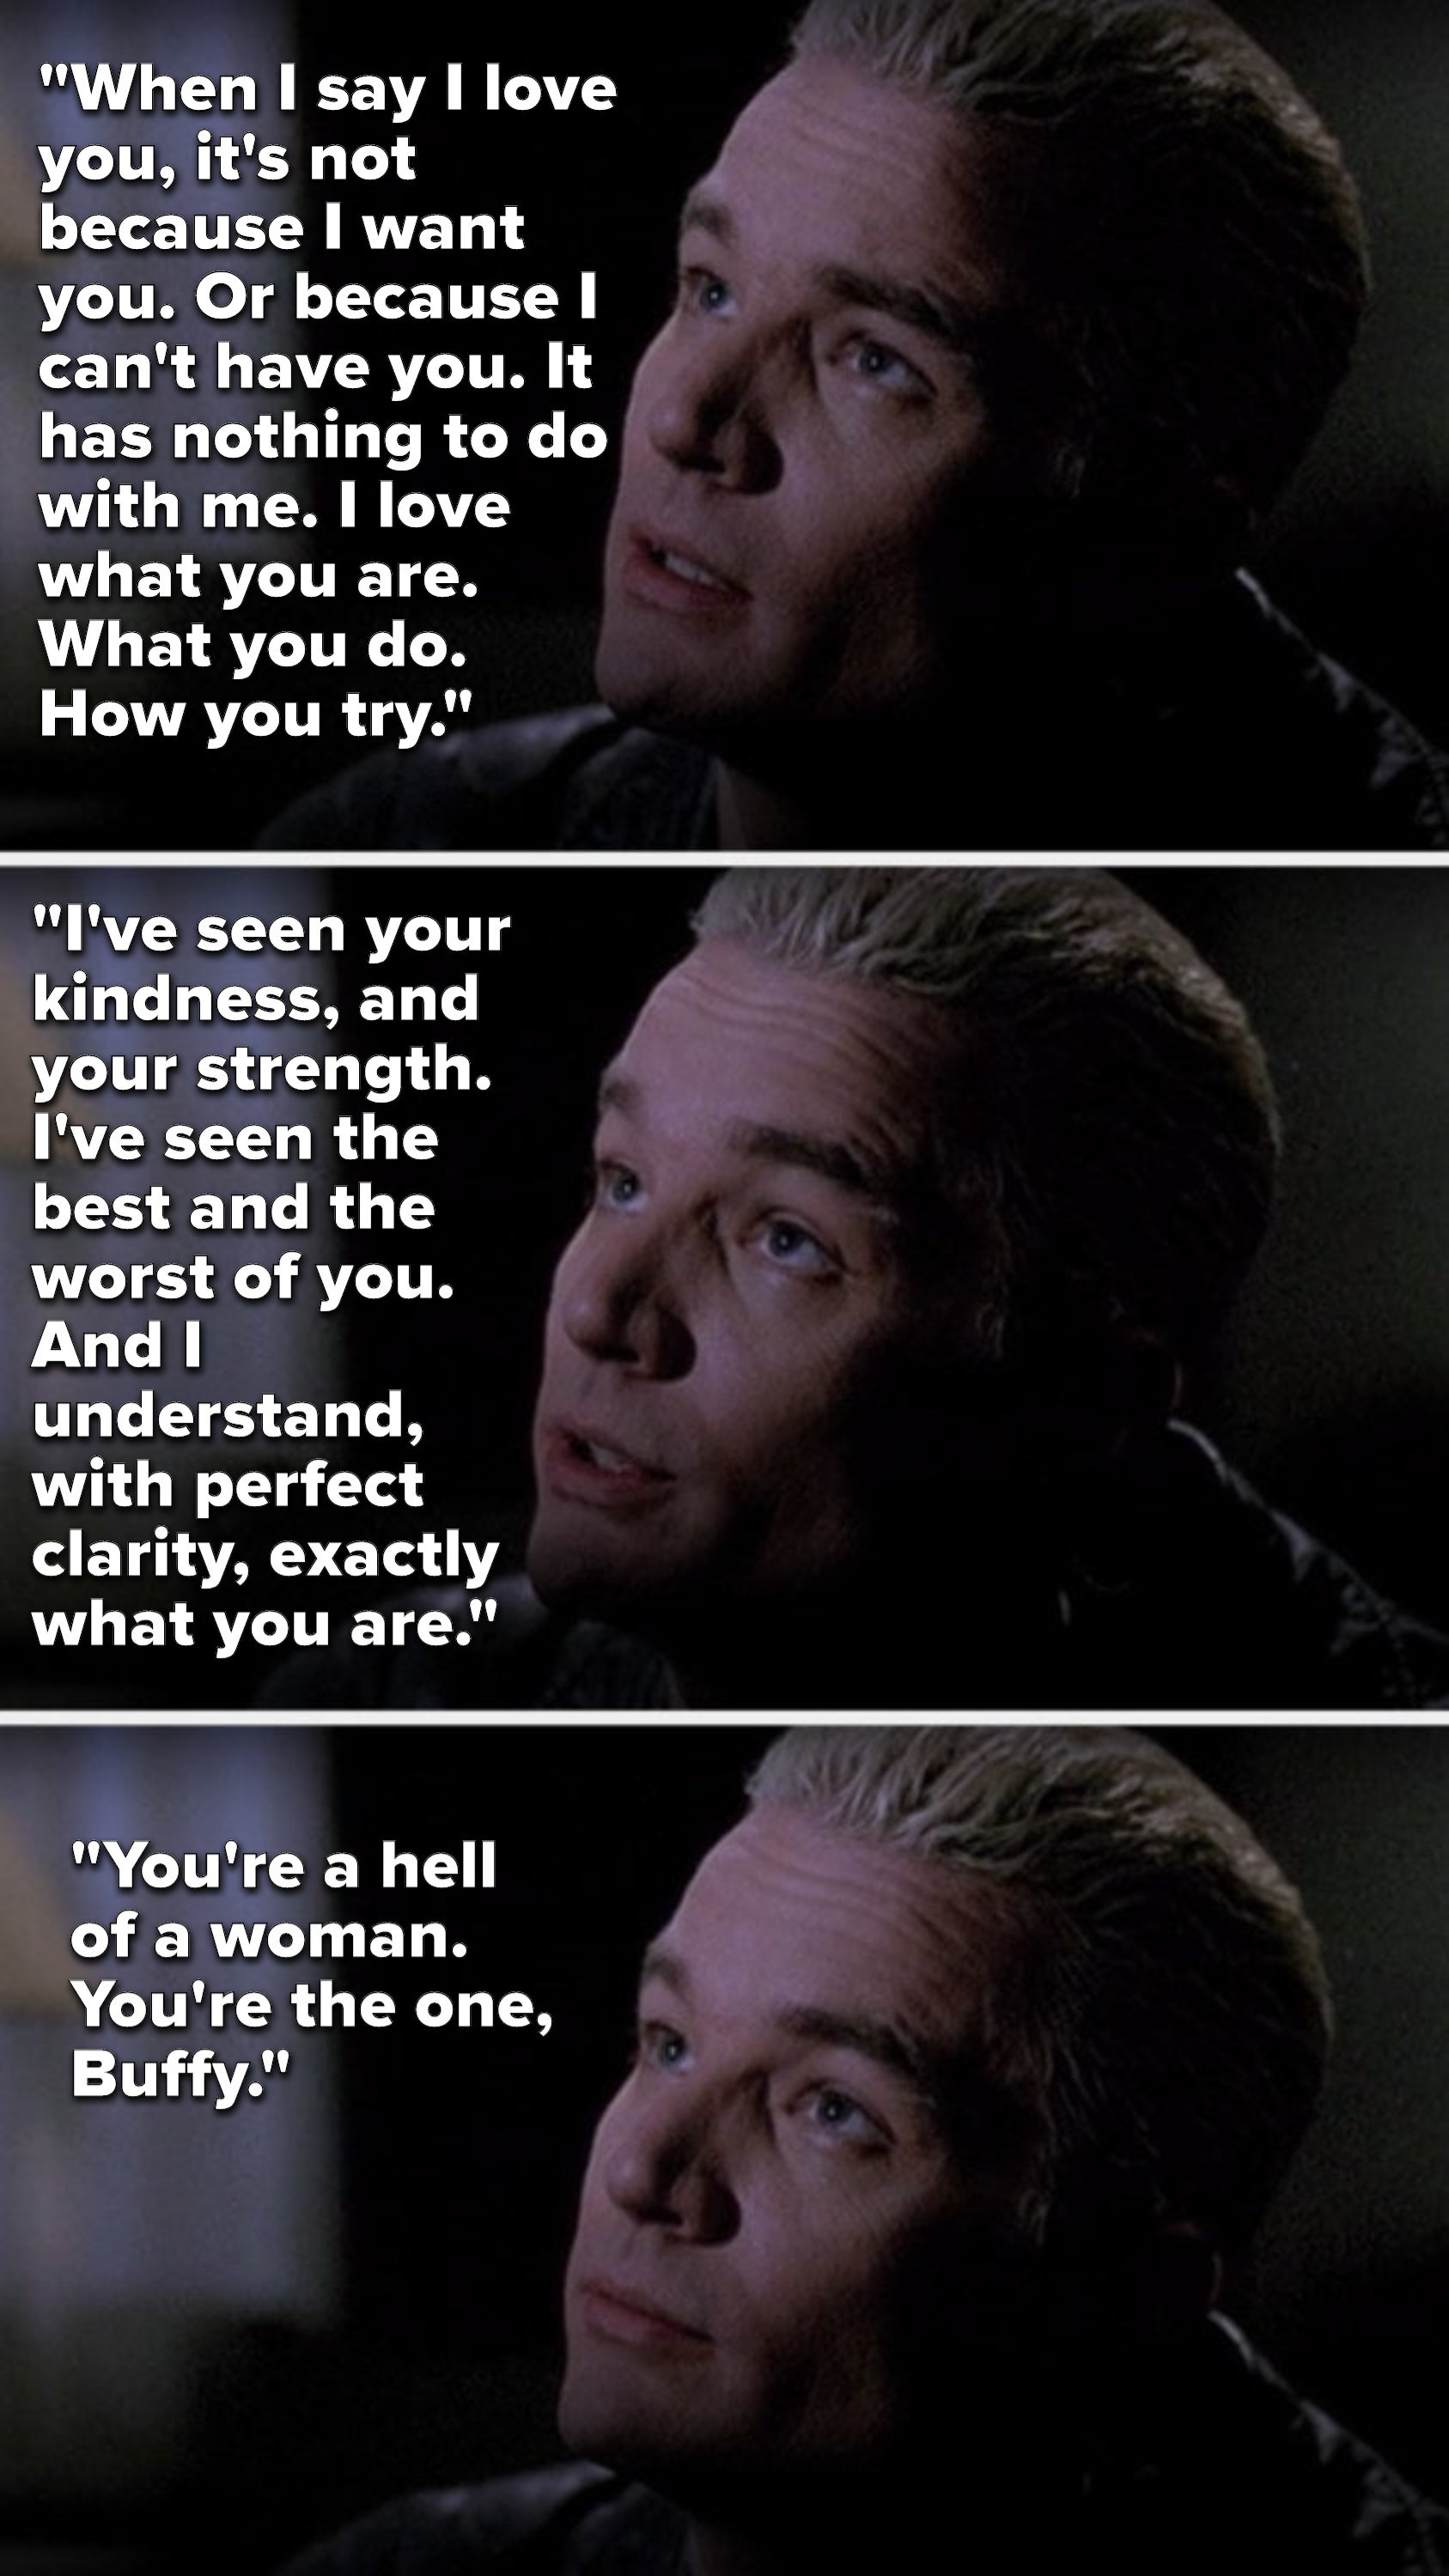 "Spike says, ""When I say I love you, it's not because I want you or can't have you, it has nothing to do with me, I love what you are, I've seen the best and the worst of you, I understand what you are, you're a hell of a woman, you're the one, Buffy"""